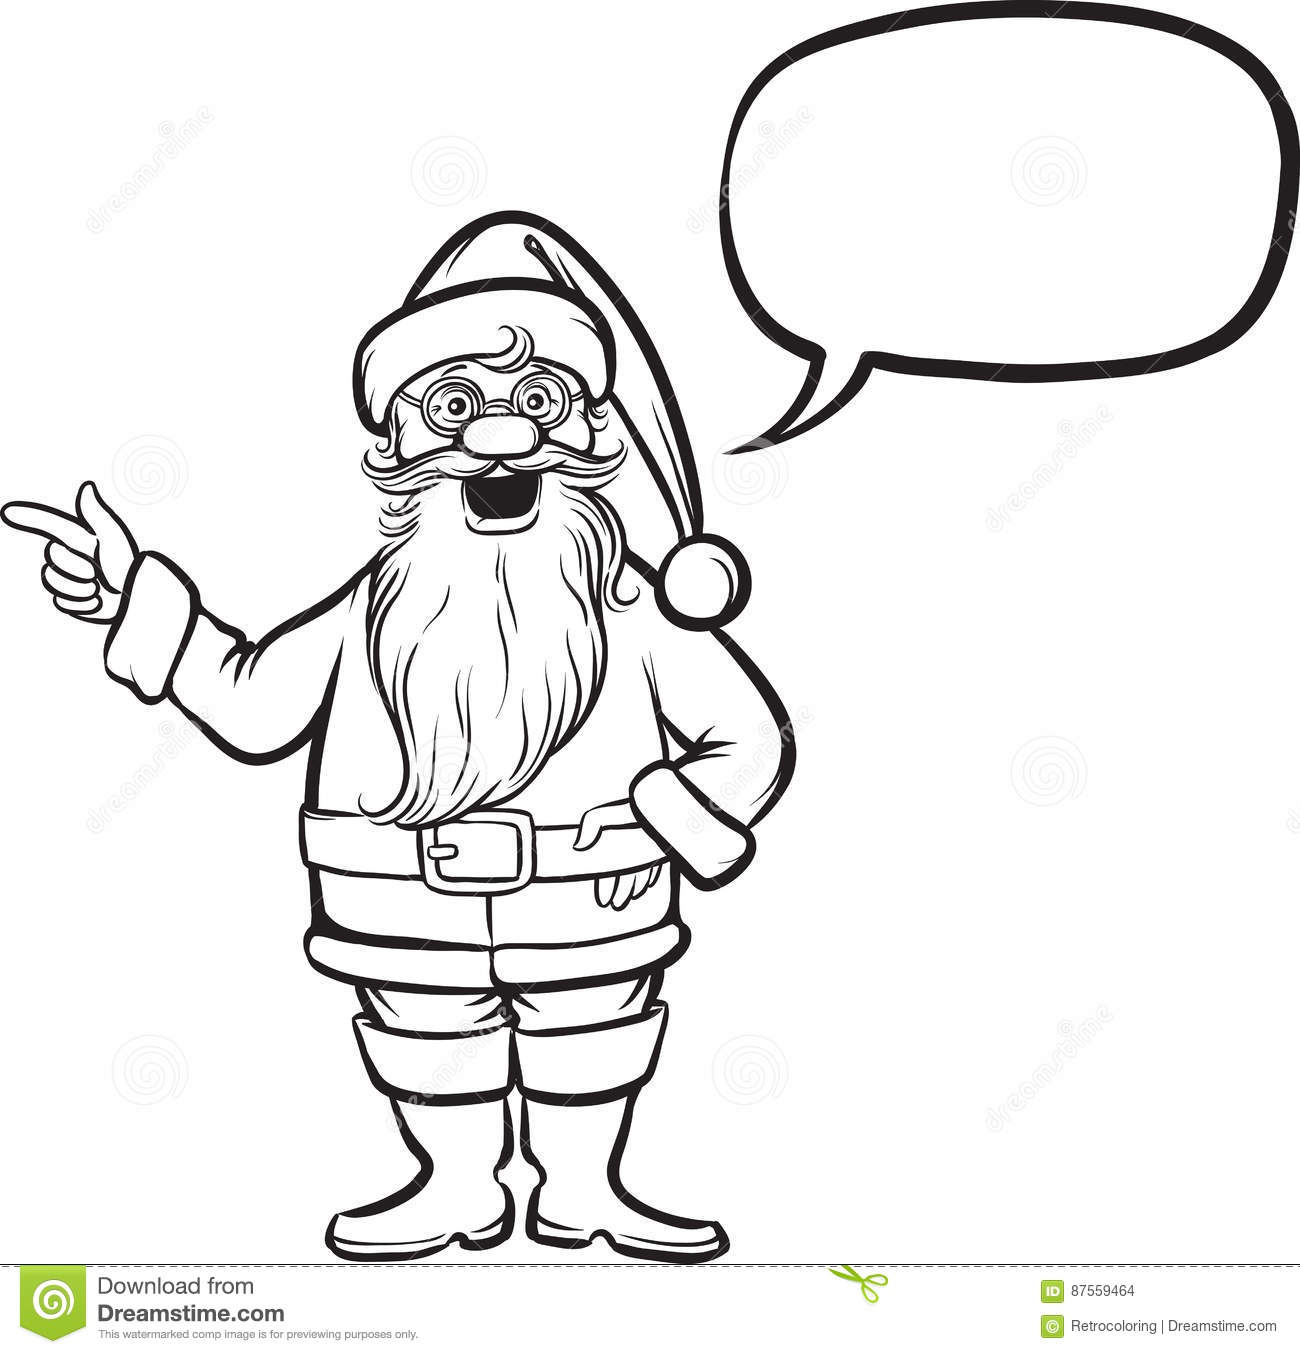 coloring book santa claus pointing